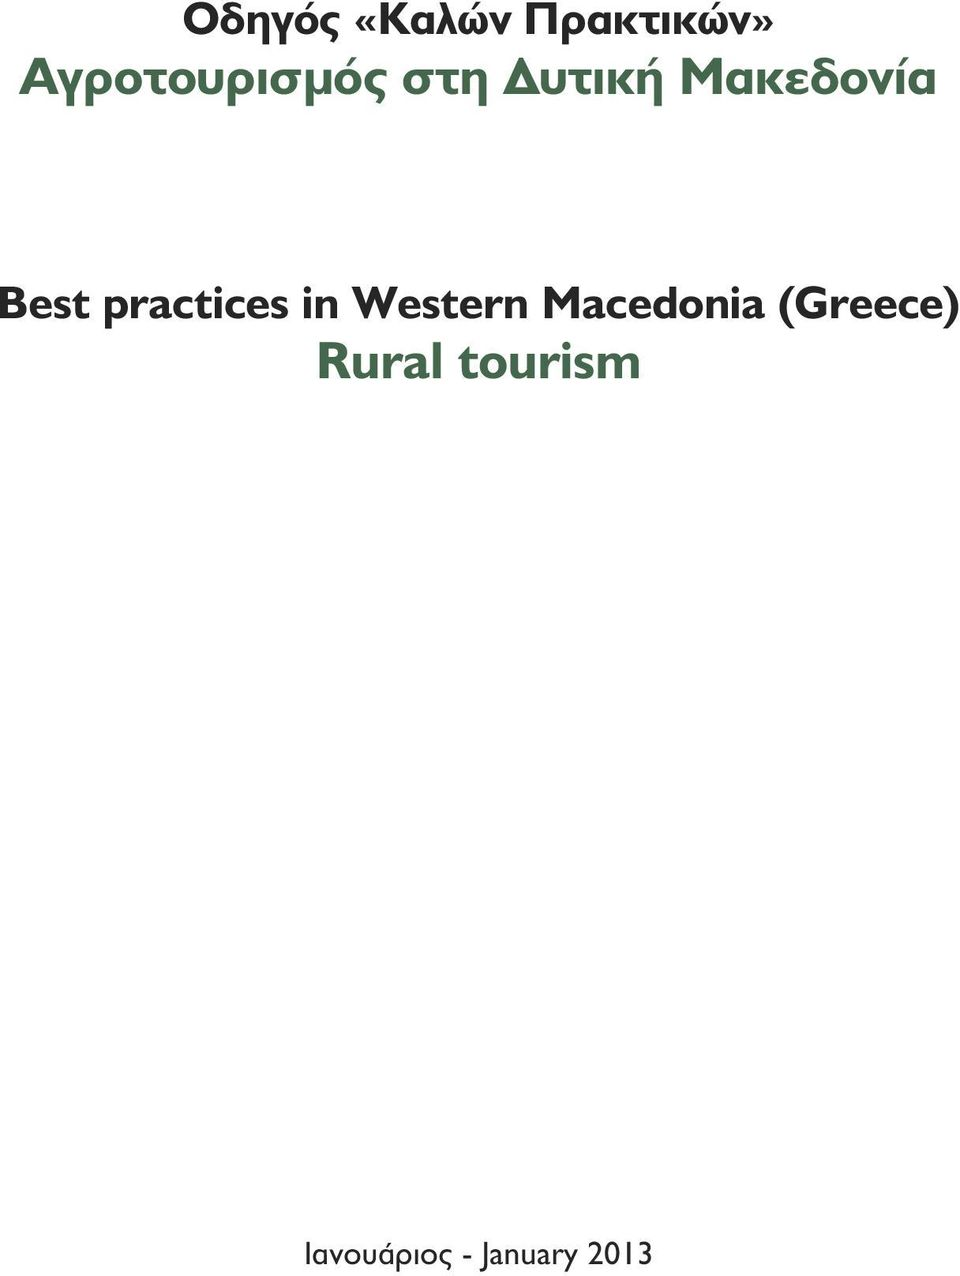 Best practices in Western Macedonia